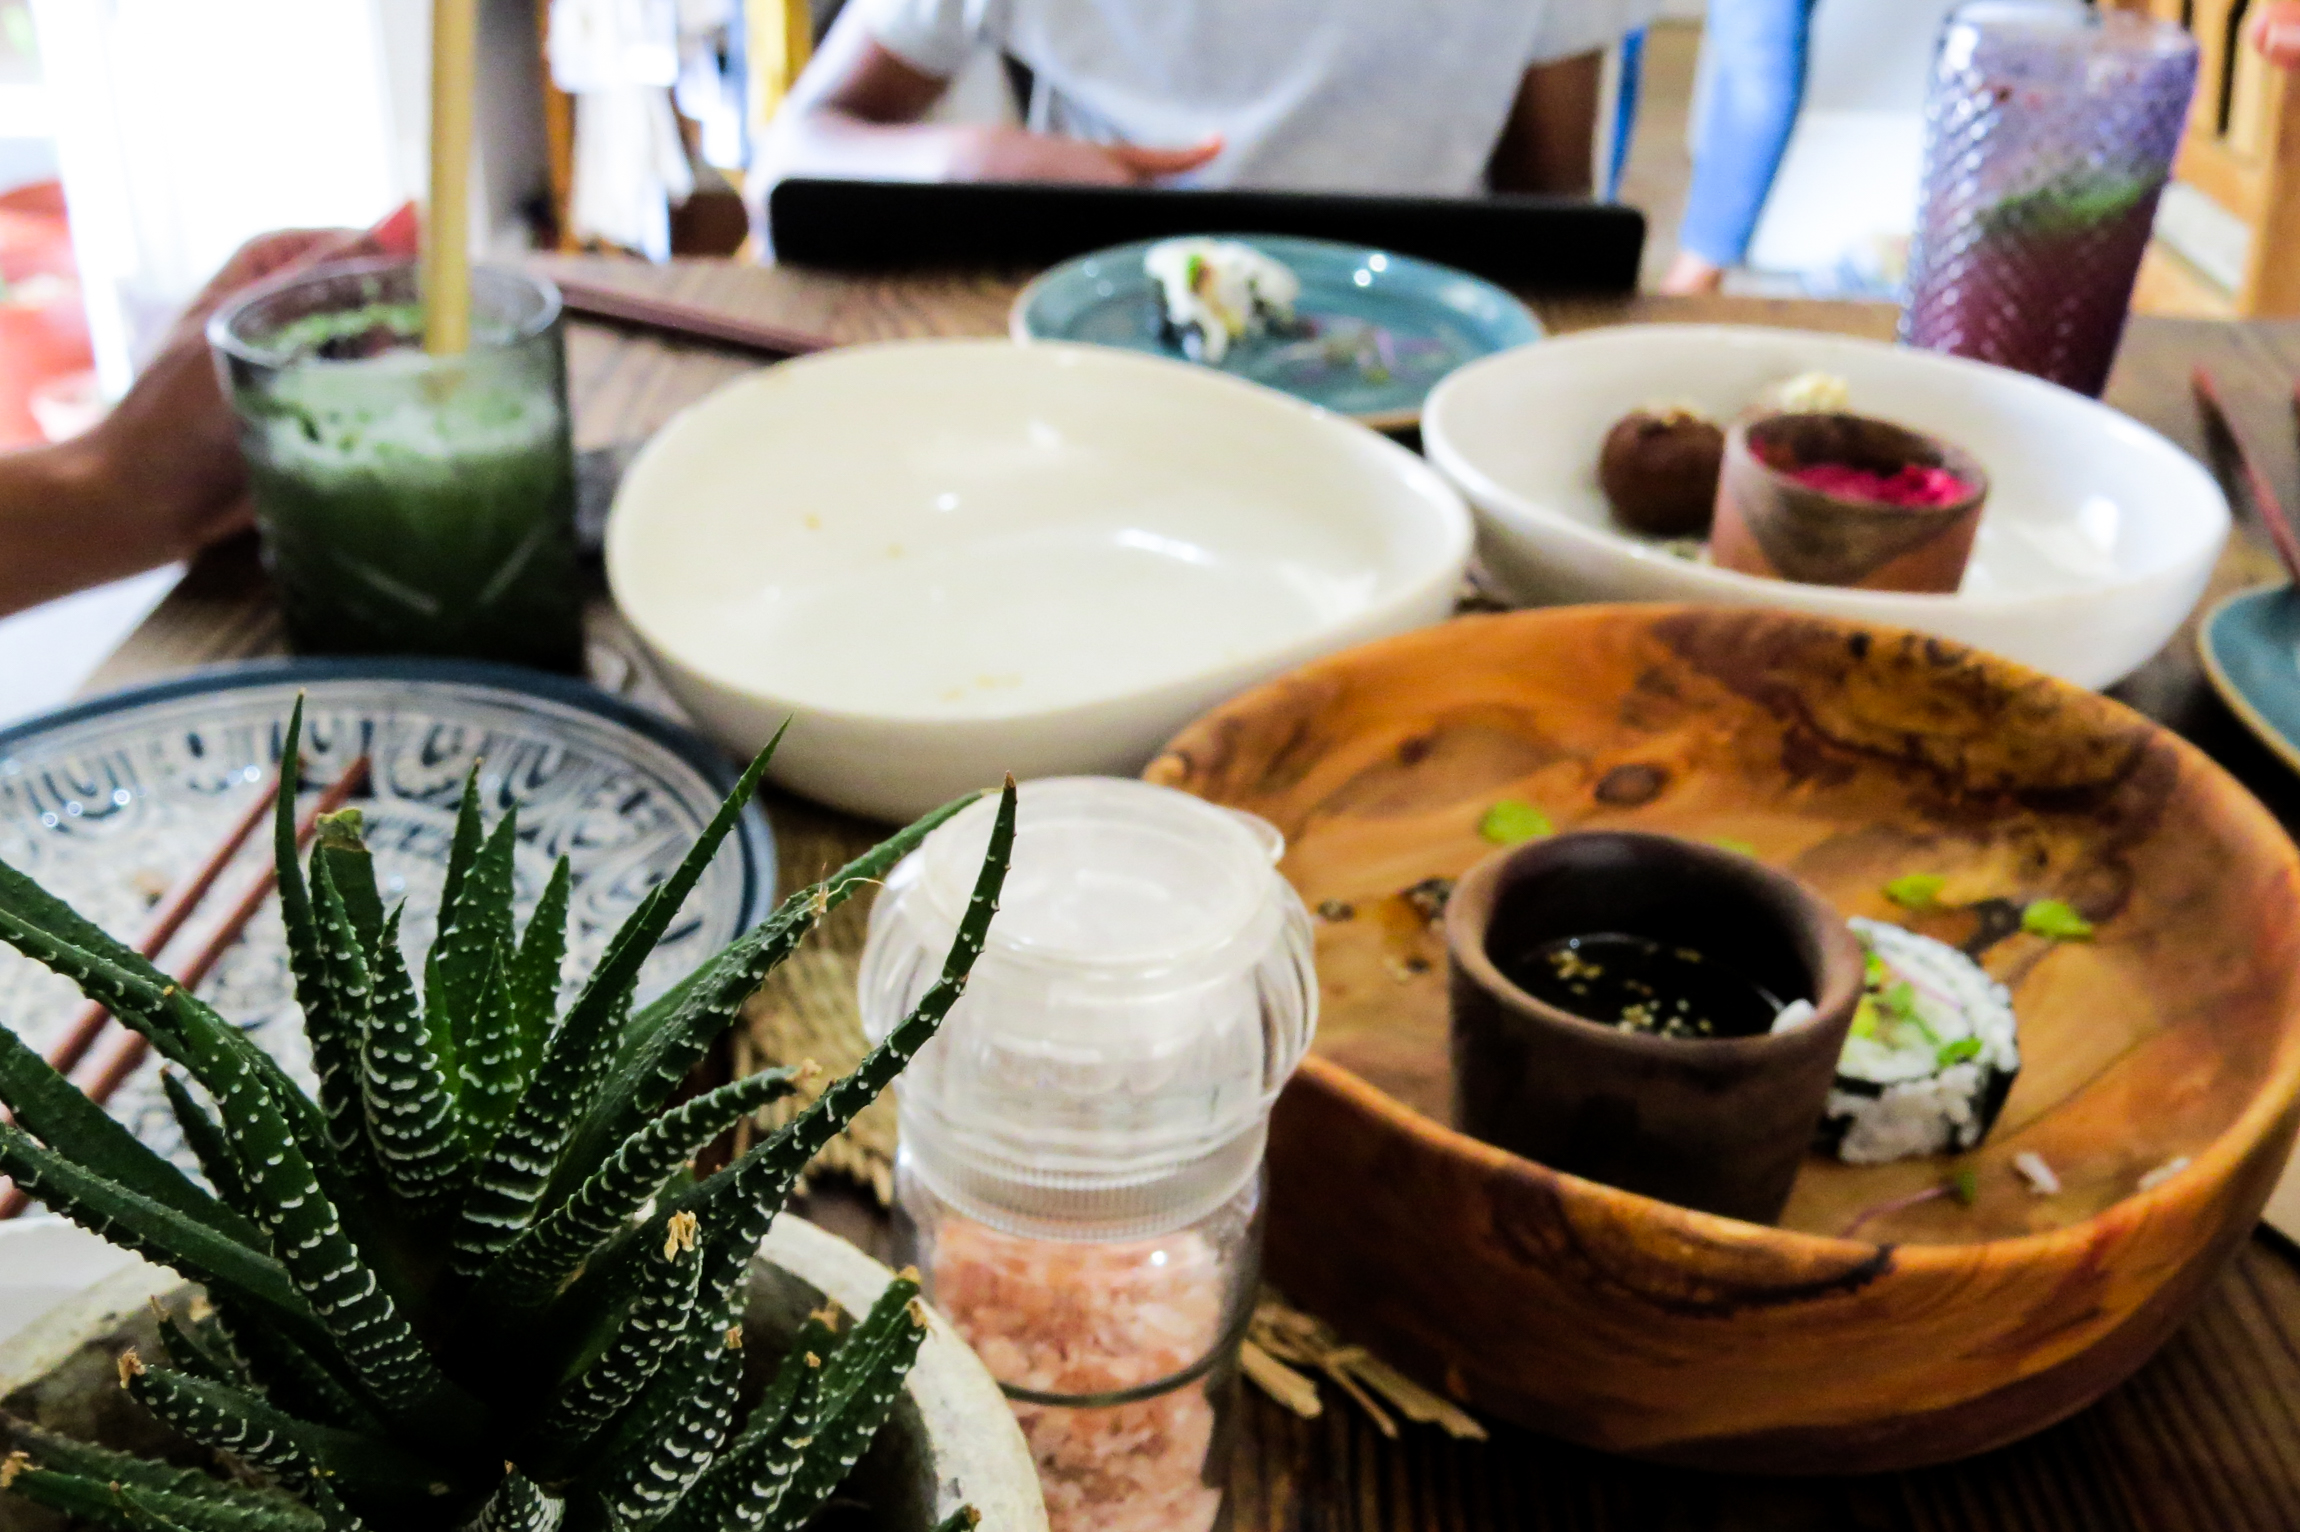 wooden bowl at restaurant table with salt and plant